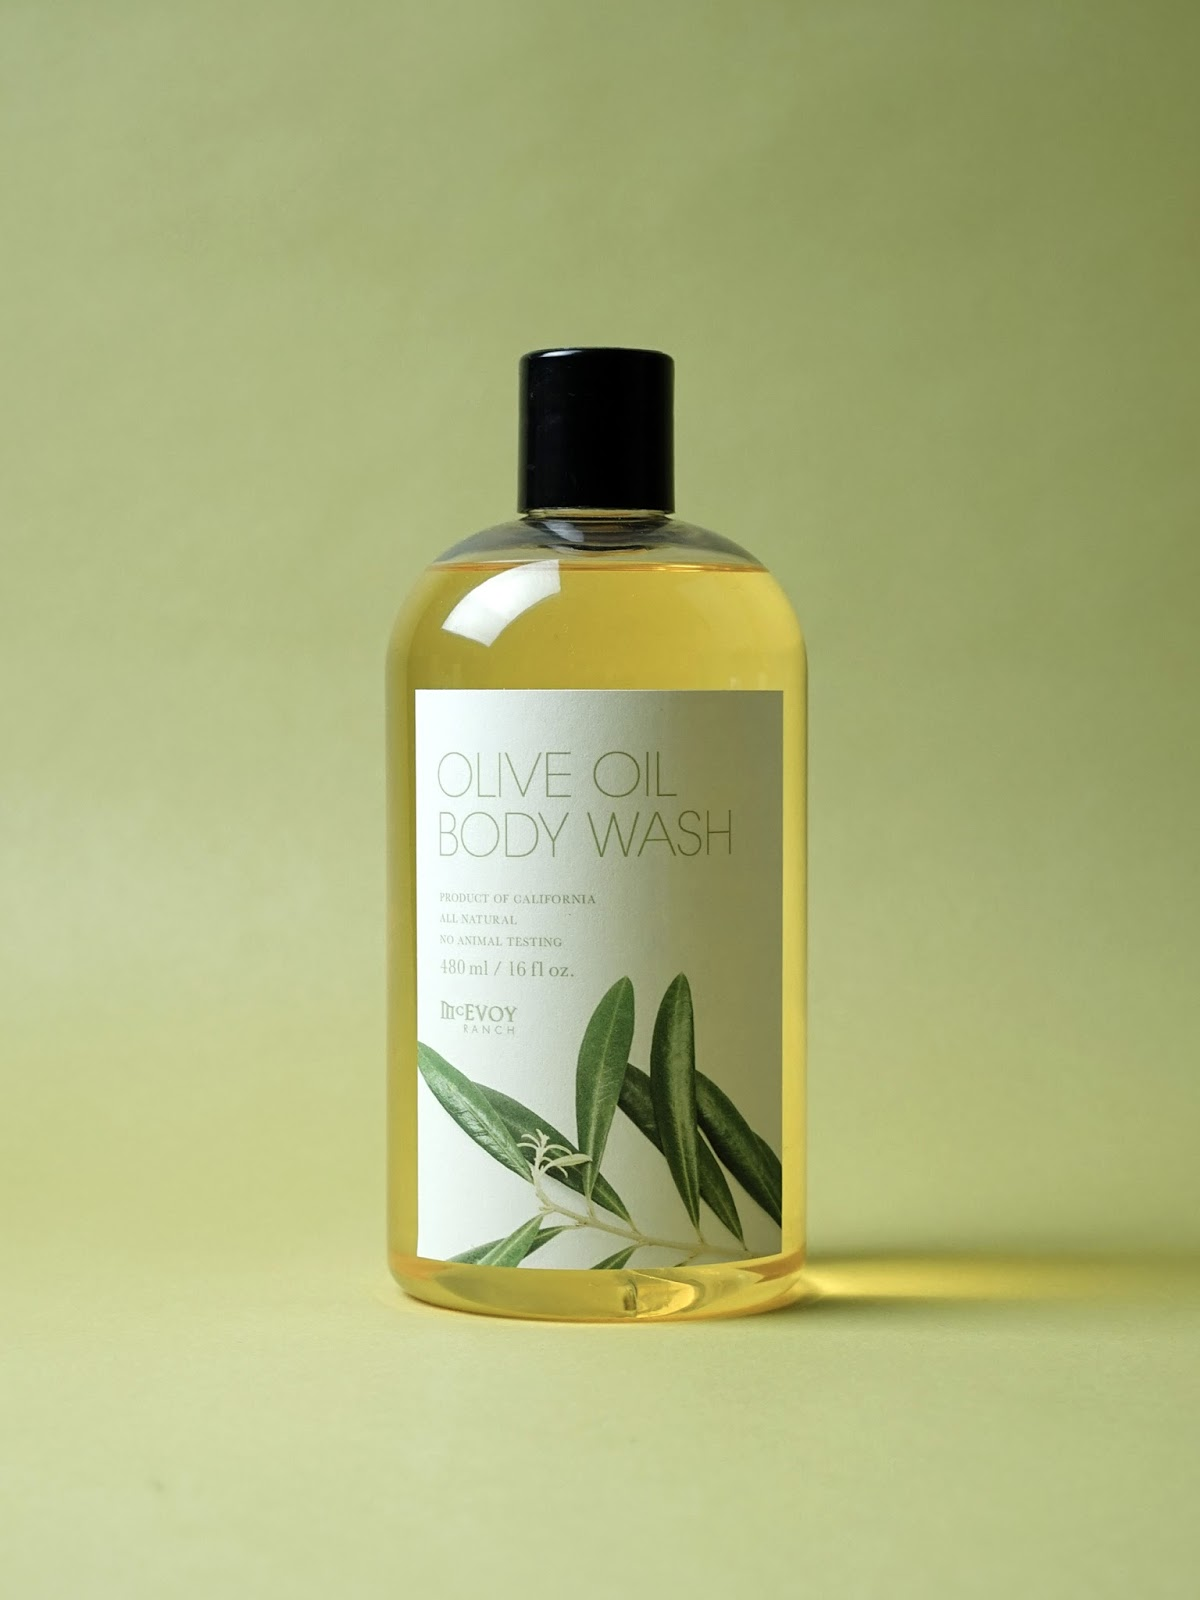 McEvoy Olive Oil Body Care Series Student Project On